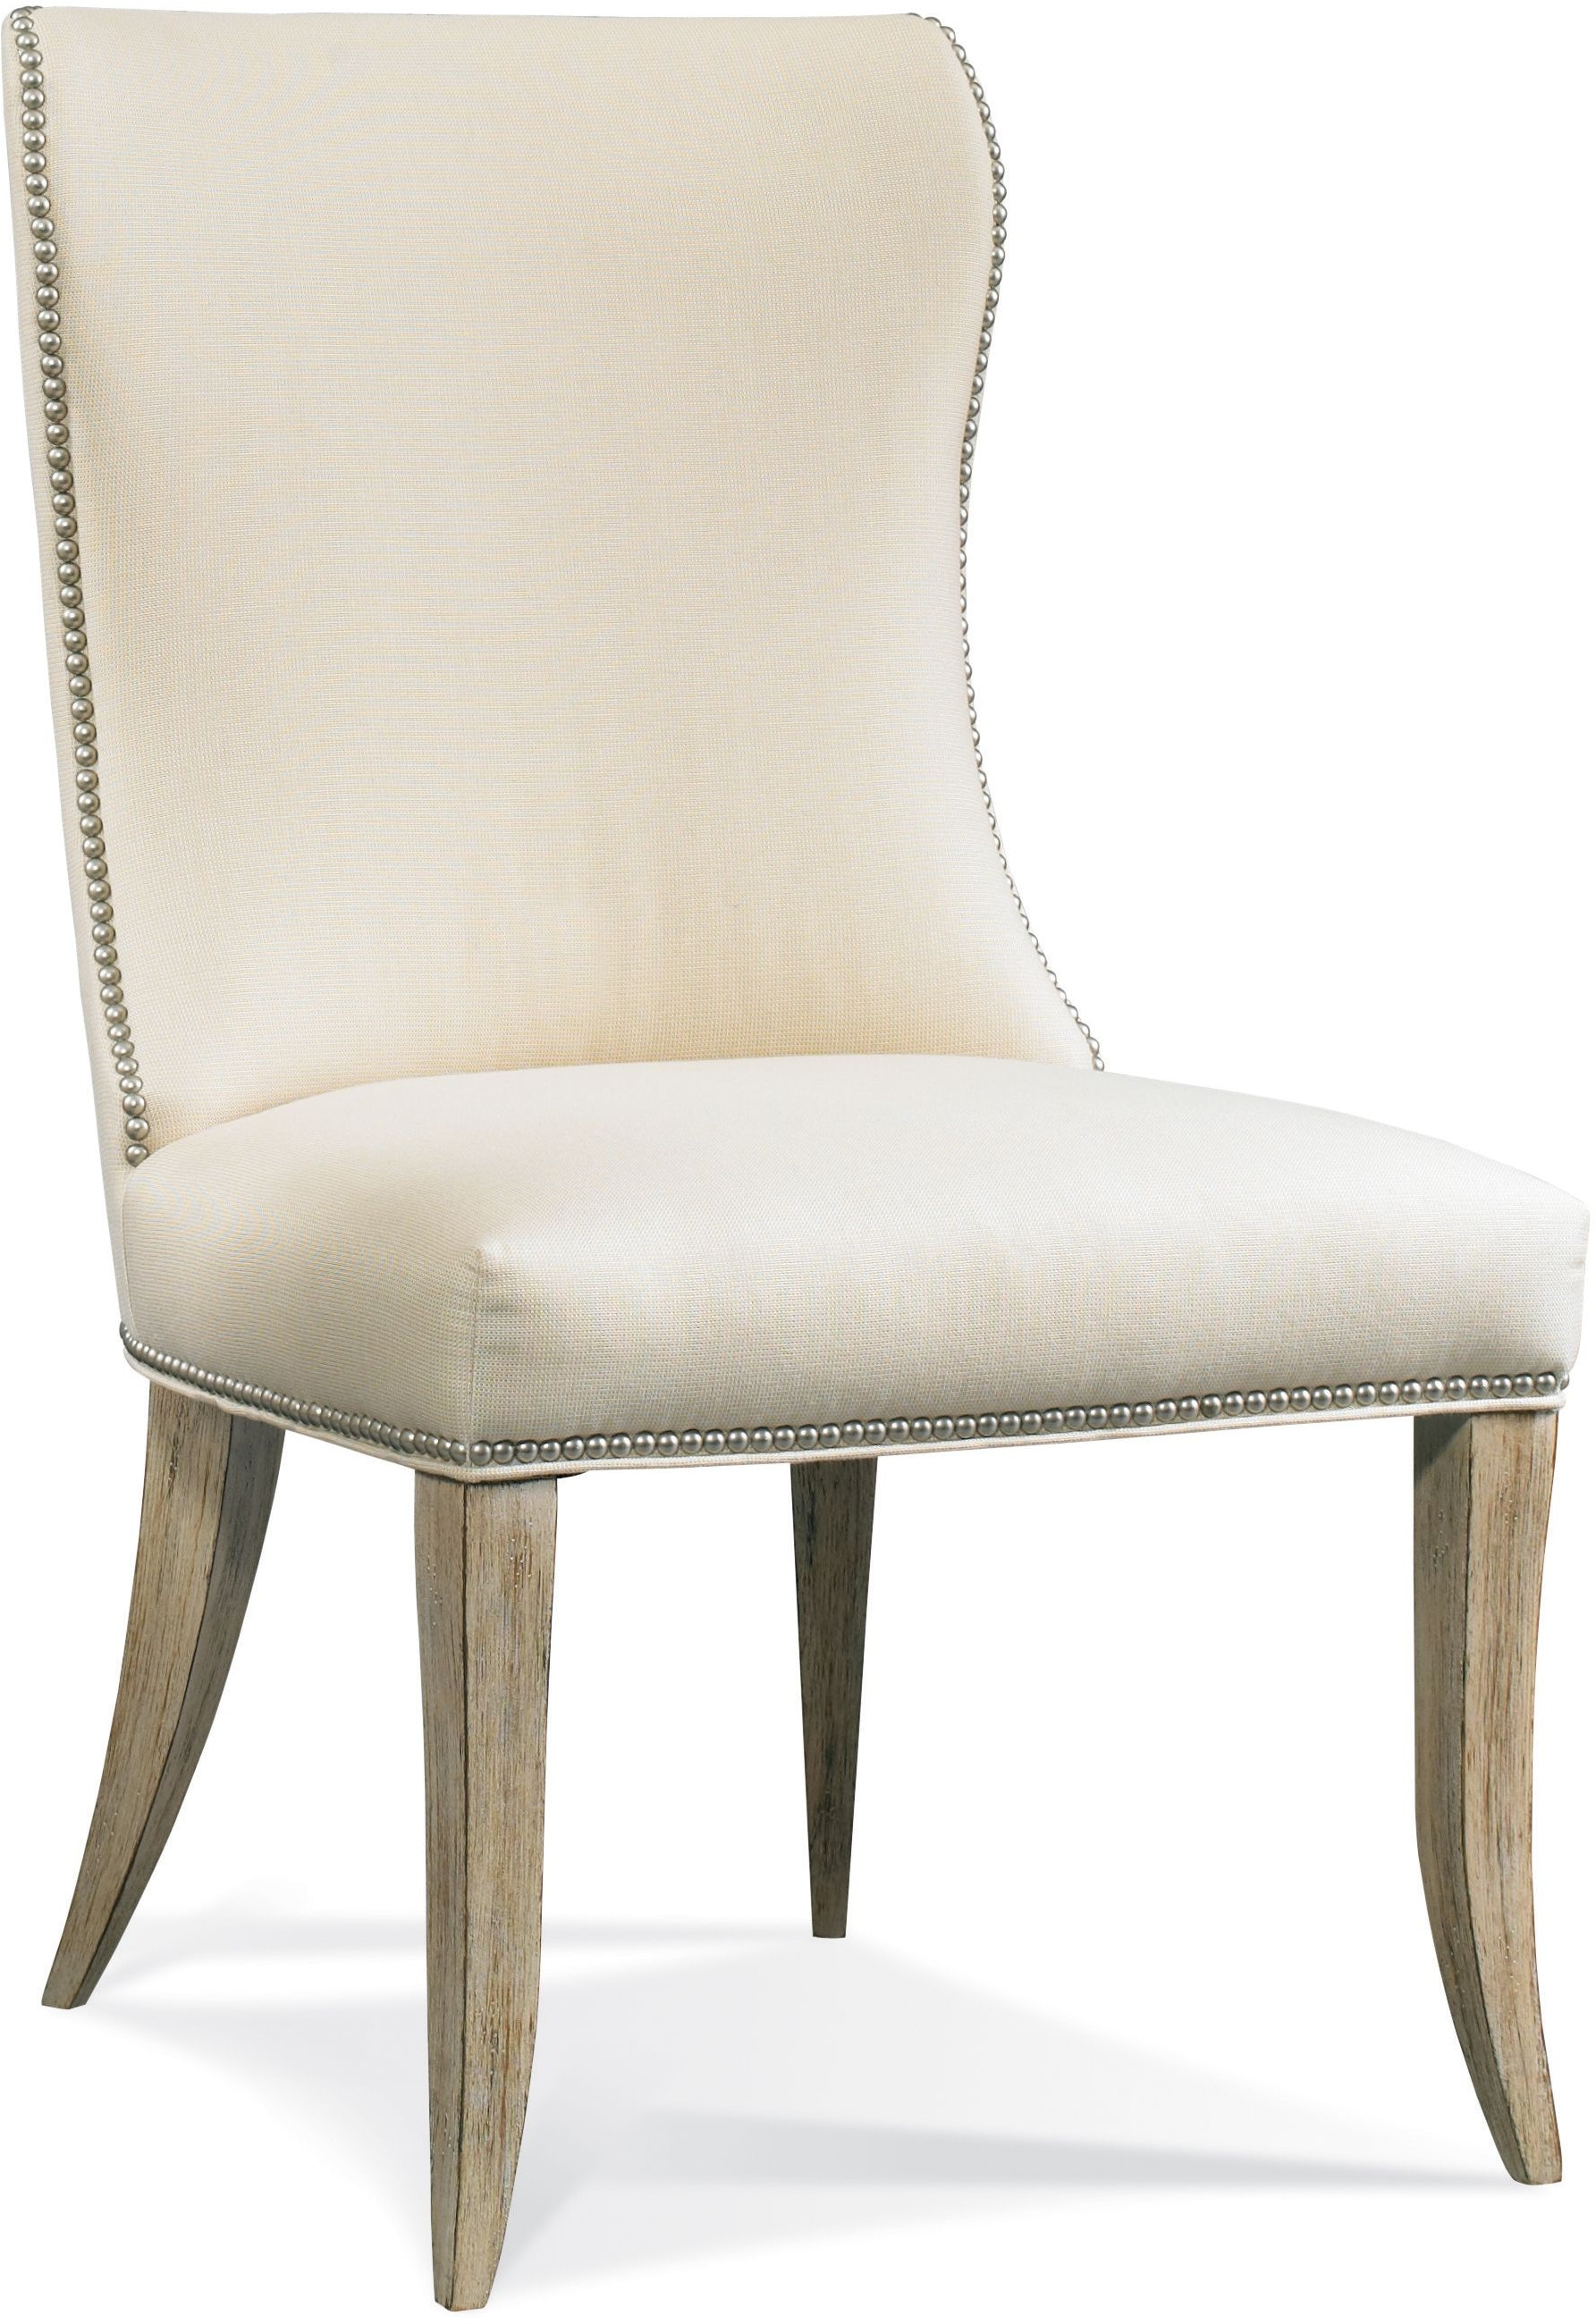 Cth Sherrill Occasional Dining Room Side Chair 388 002